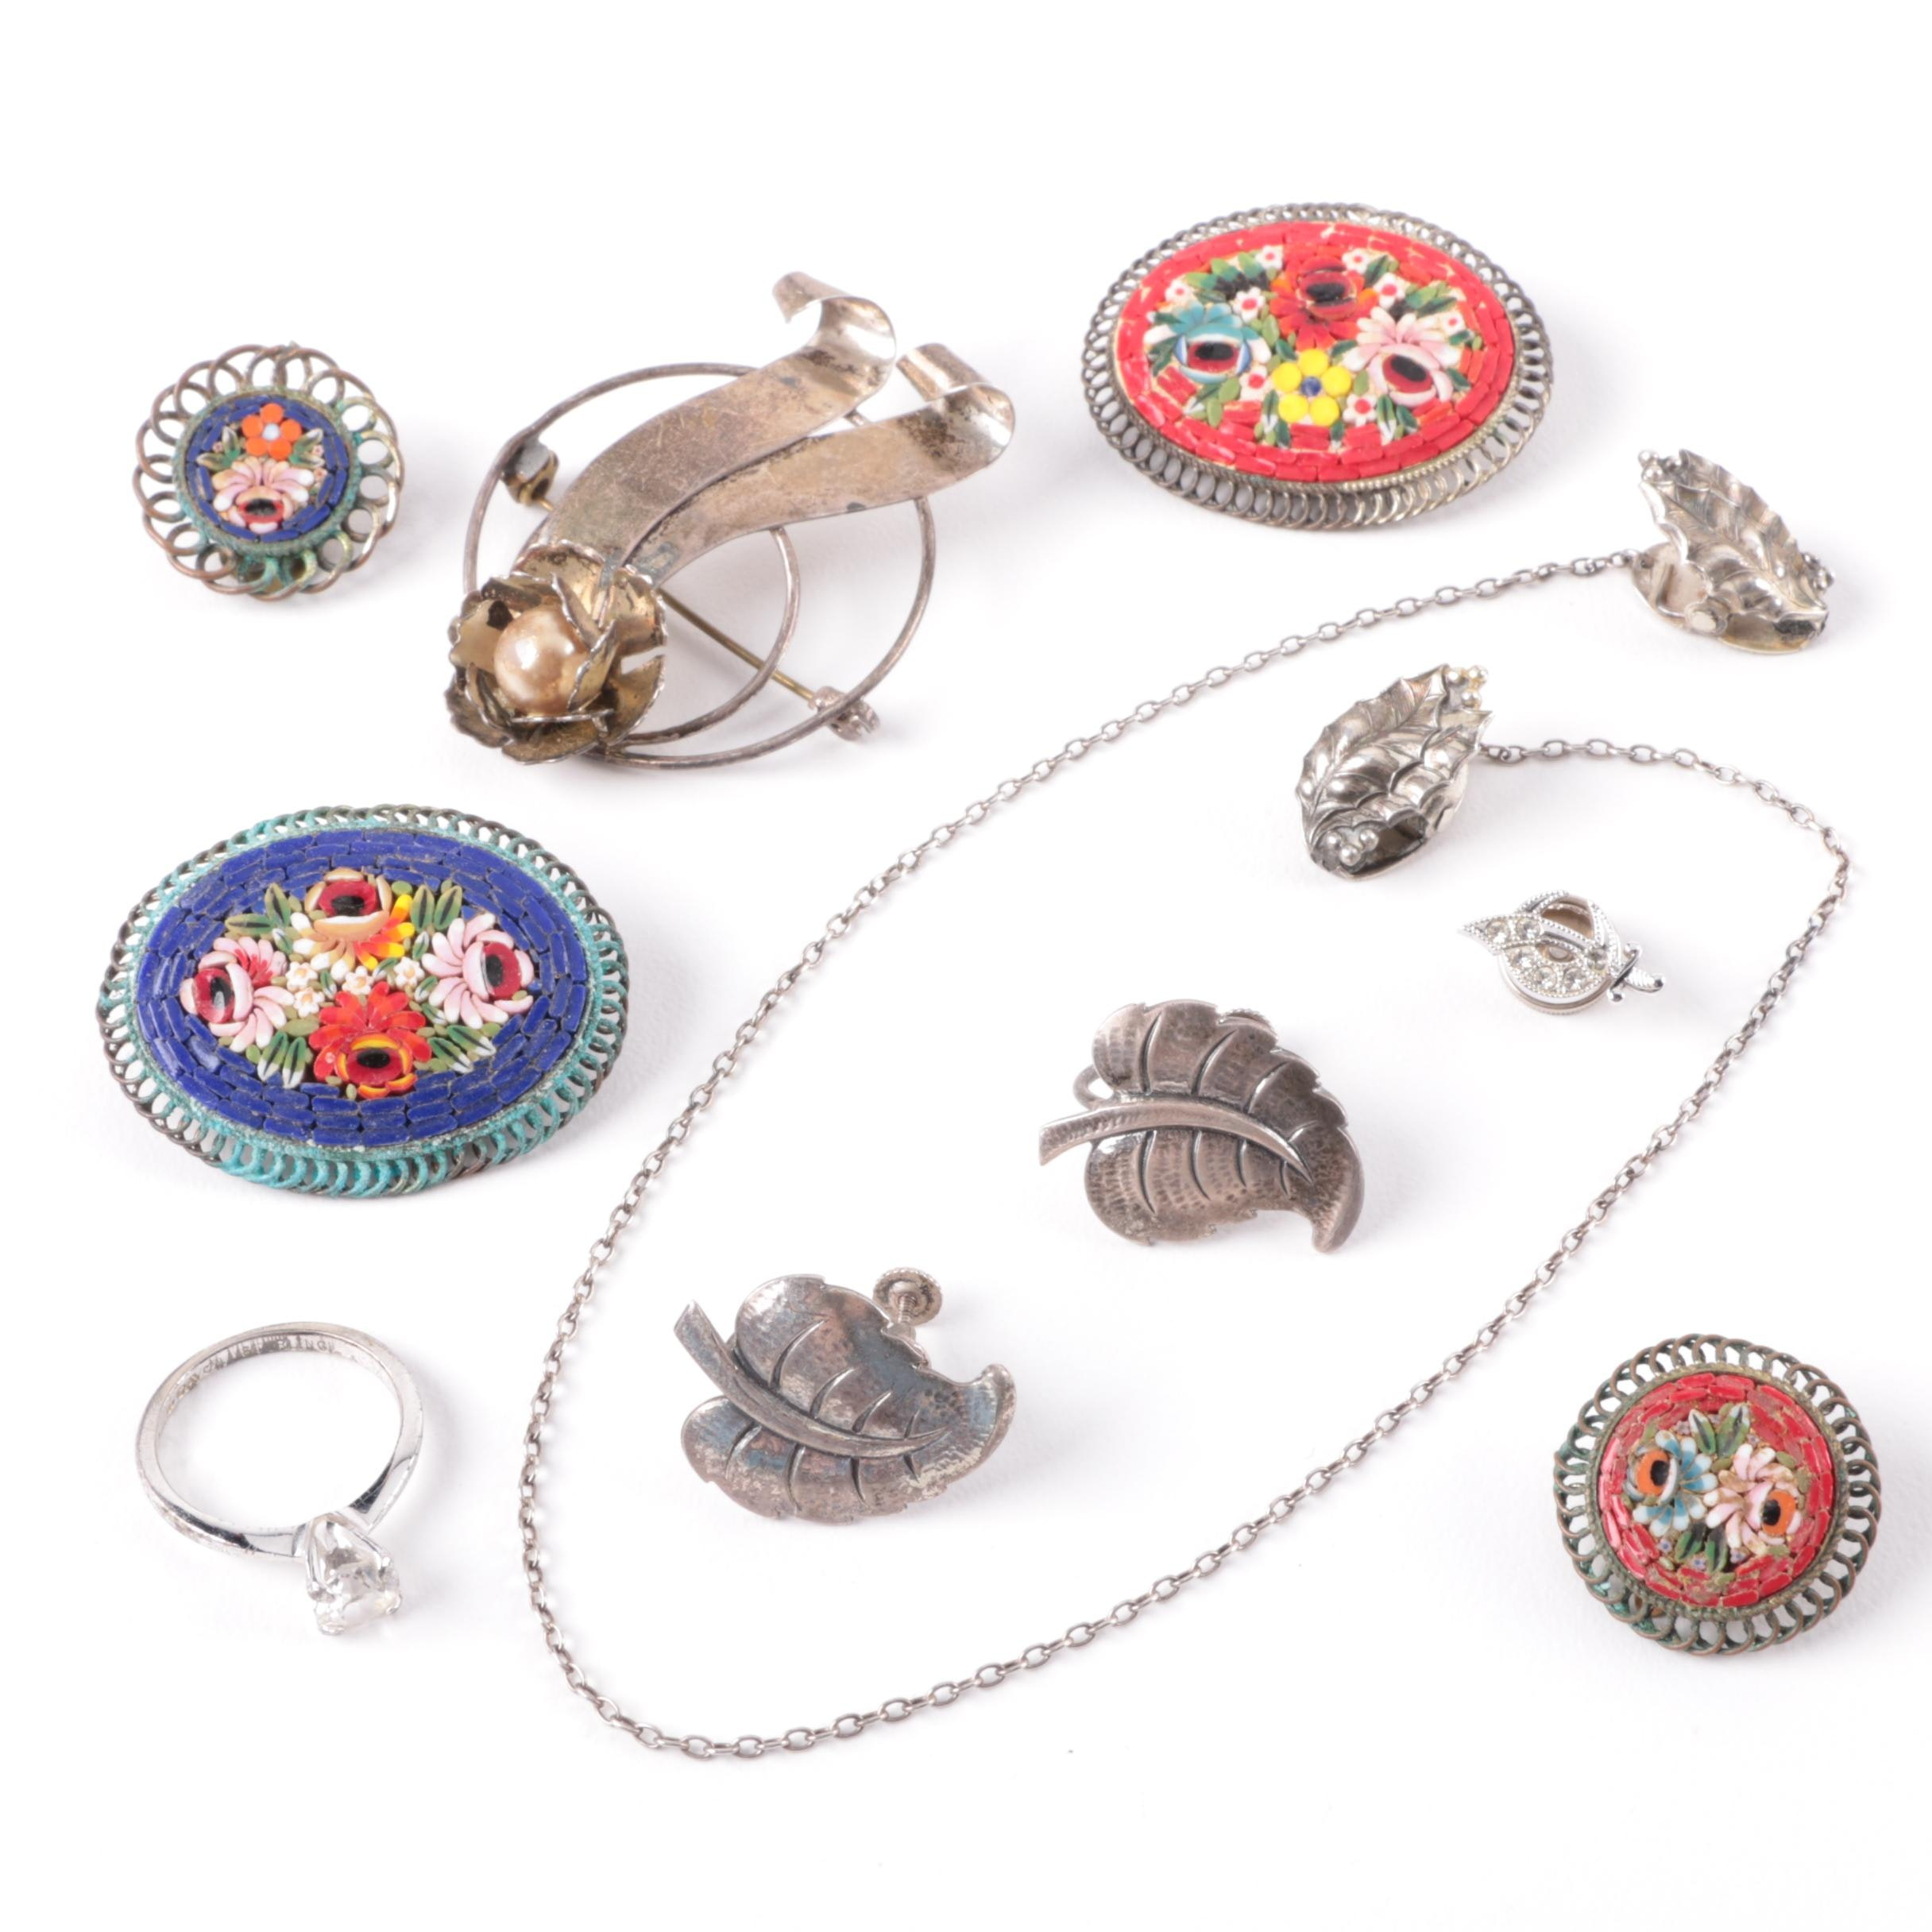 Sterling Silver Jewelry Featuring Mosaic Glass